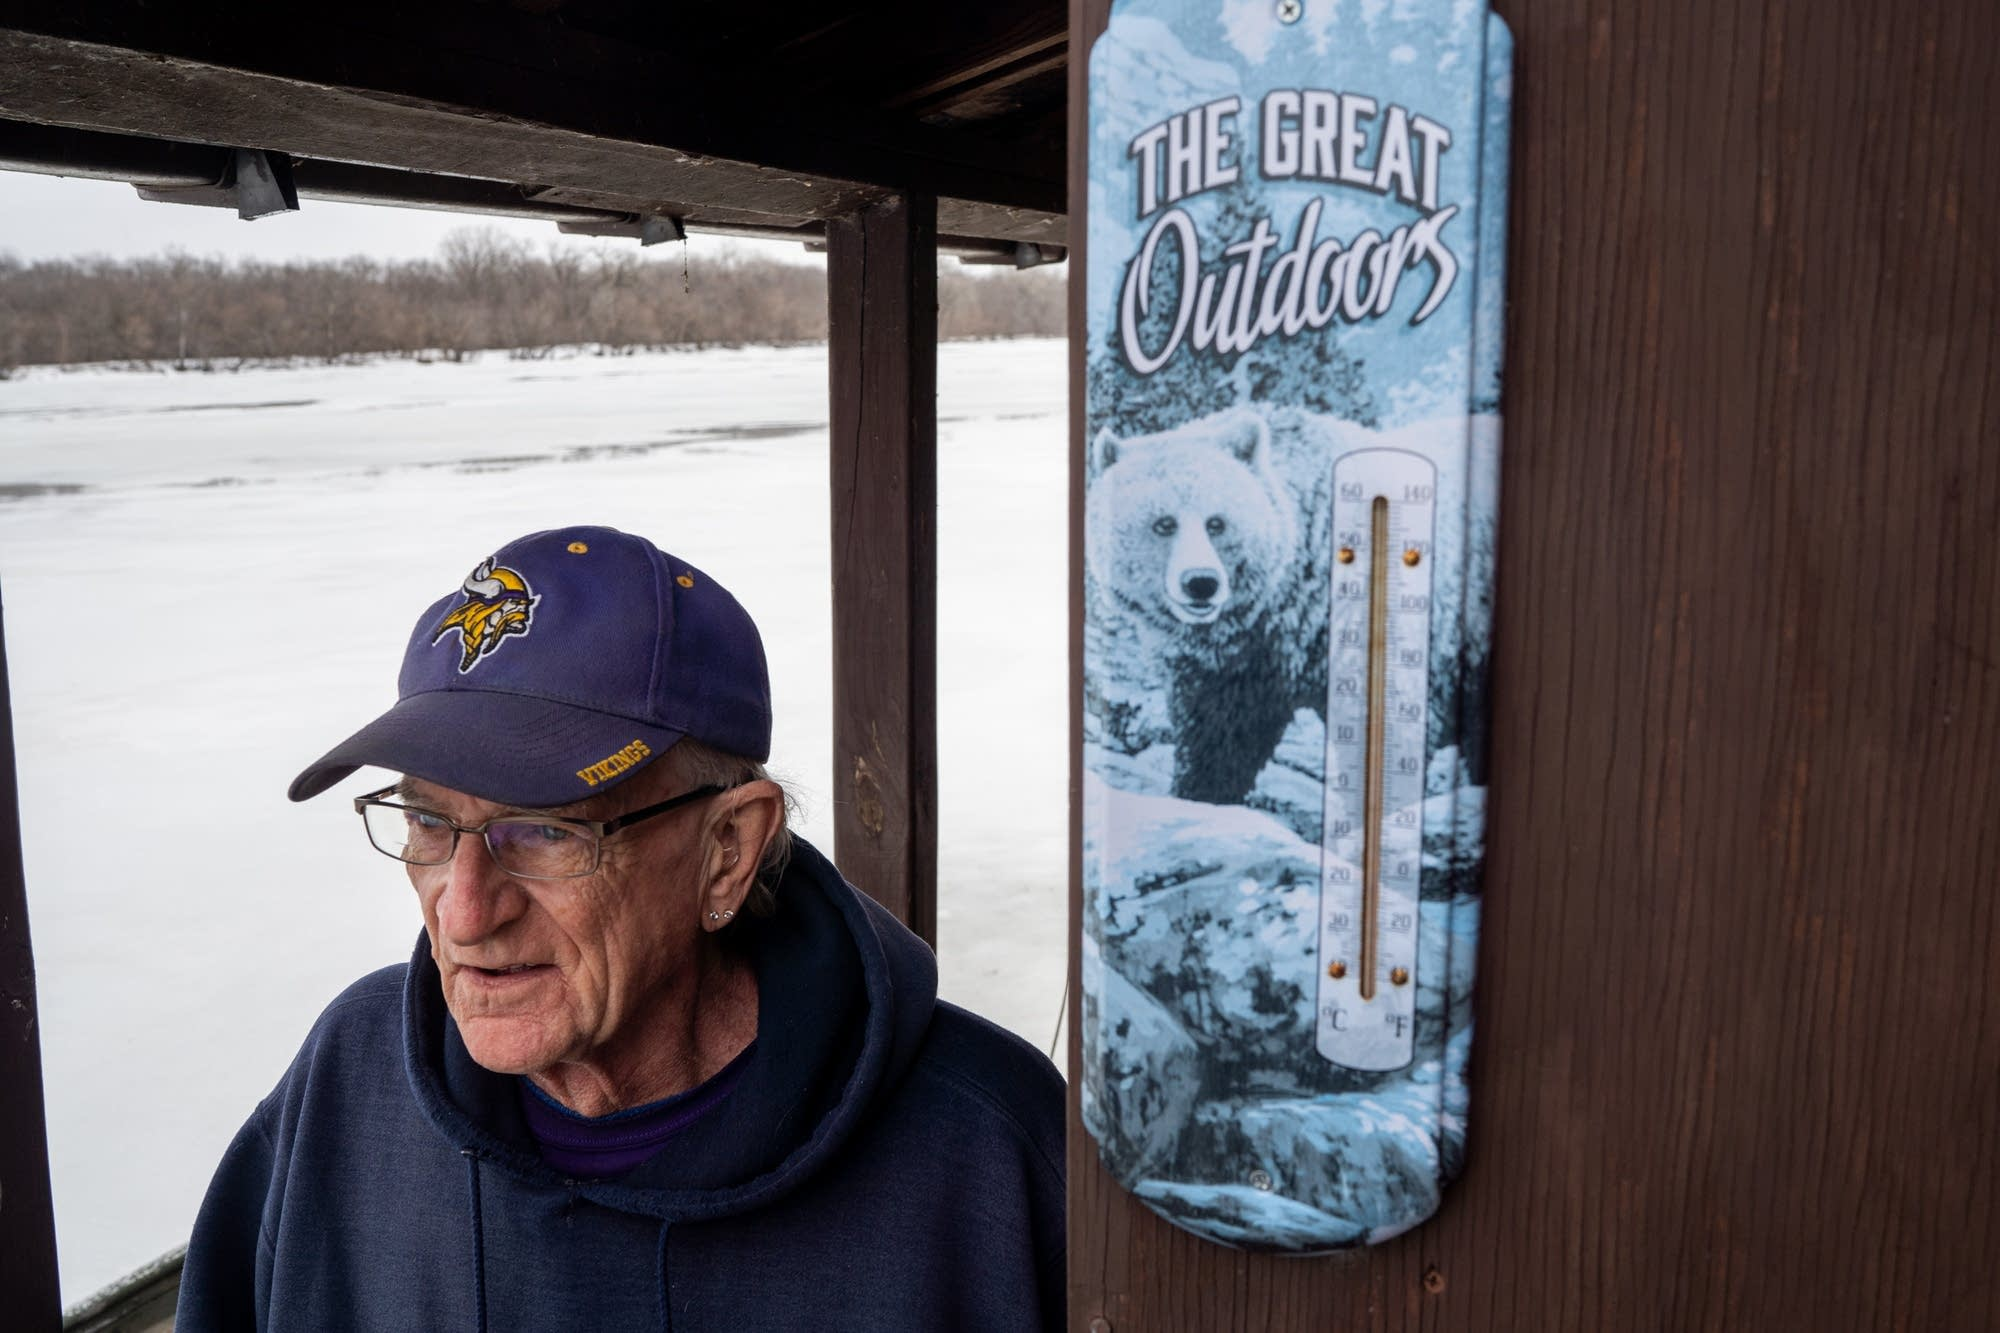 John Rupkey stands on the deck of his houseboat.